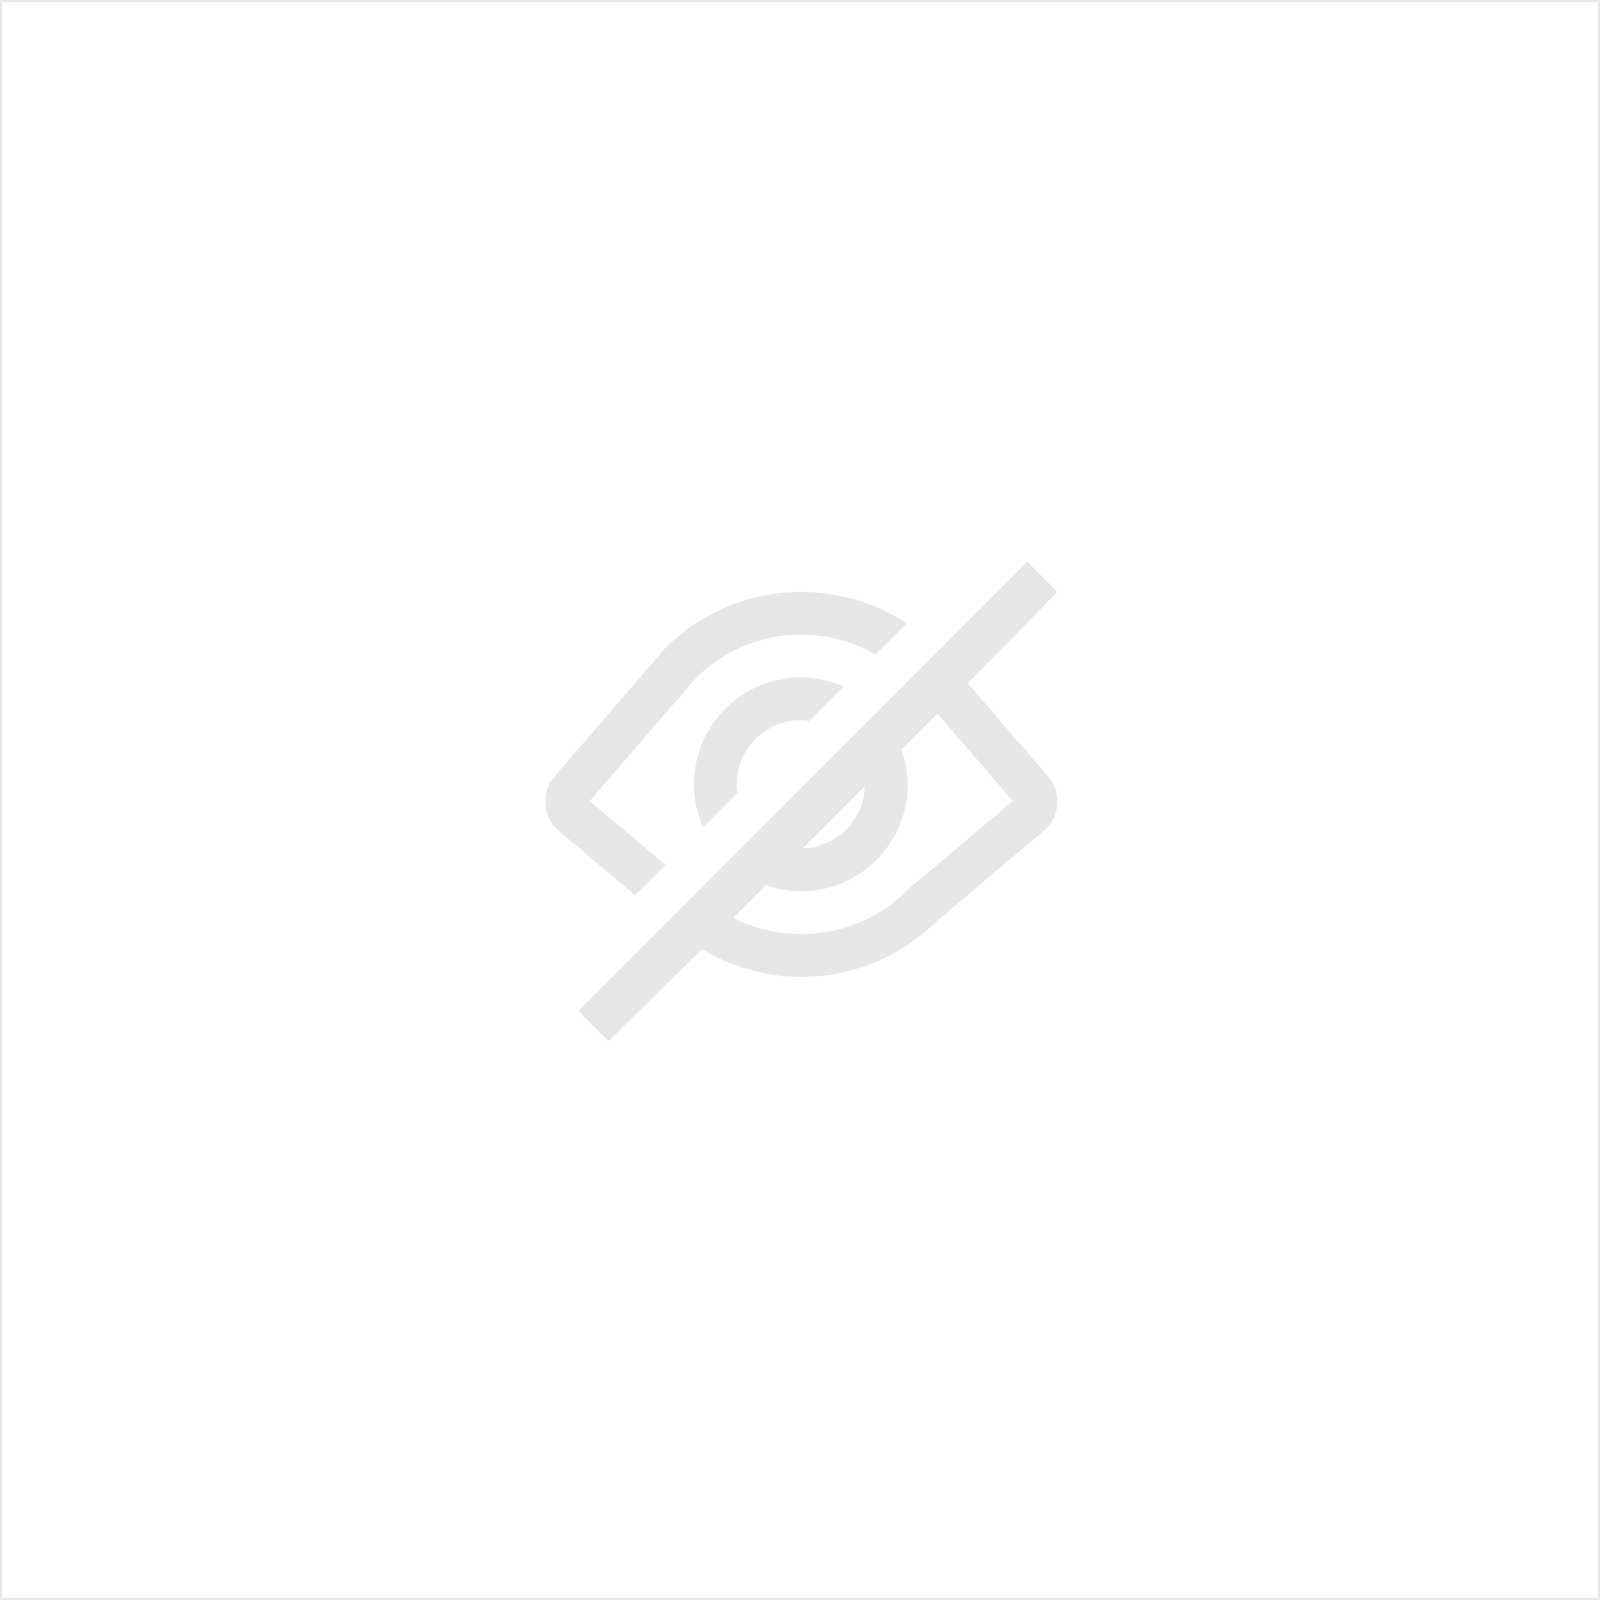 GUNSON KIT TESTEUR COMBUSTION COLORTUNE - 14MM (G4074)